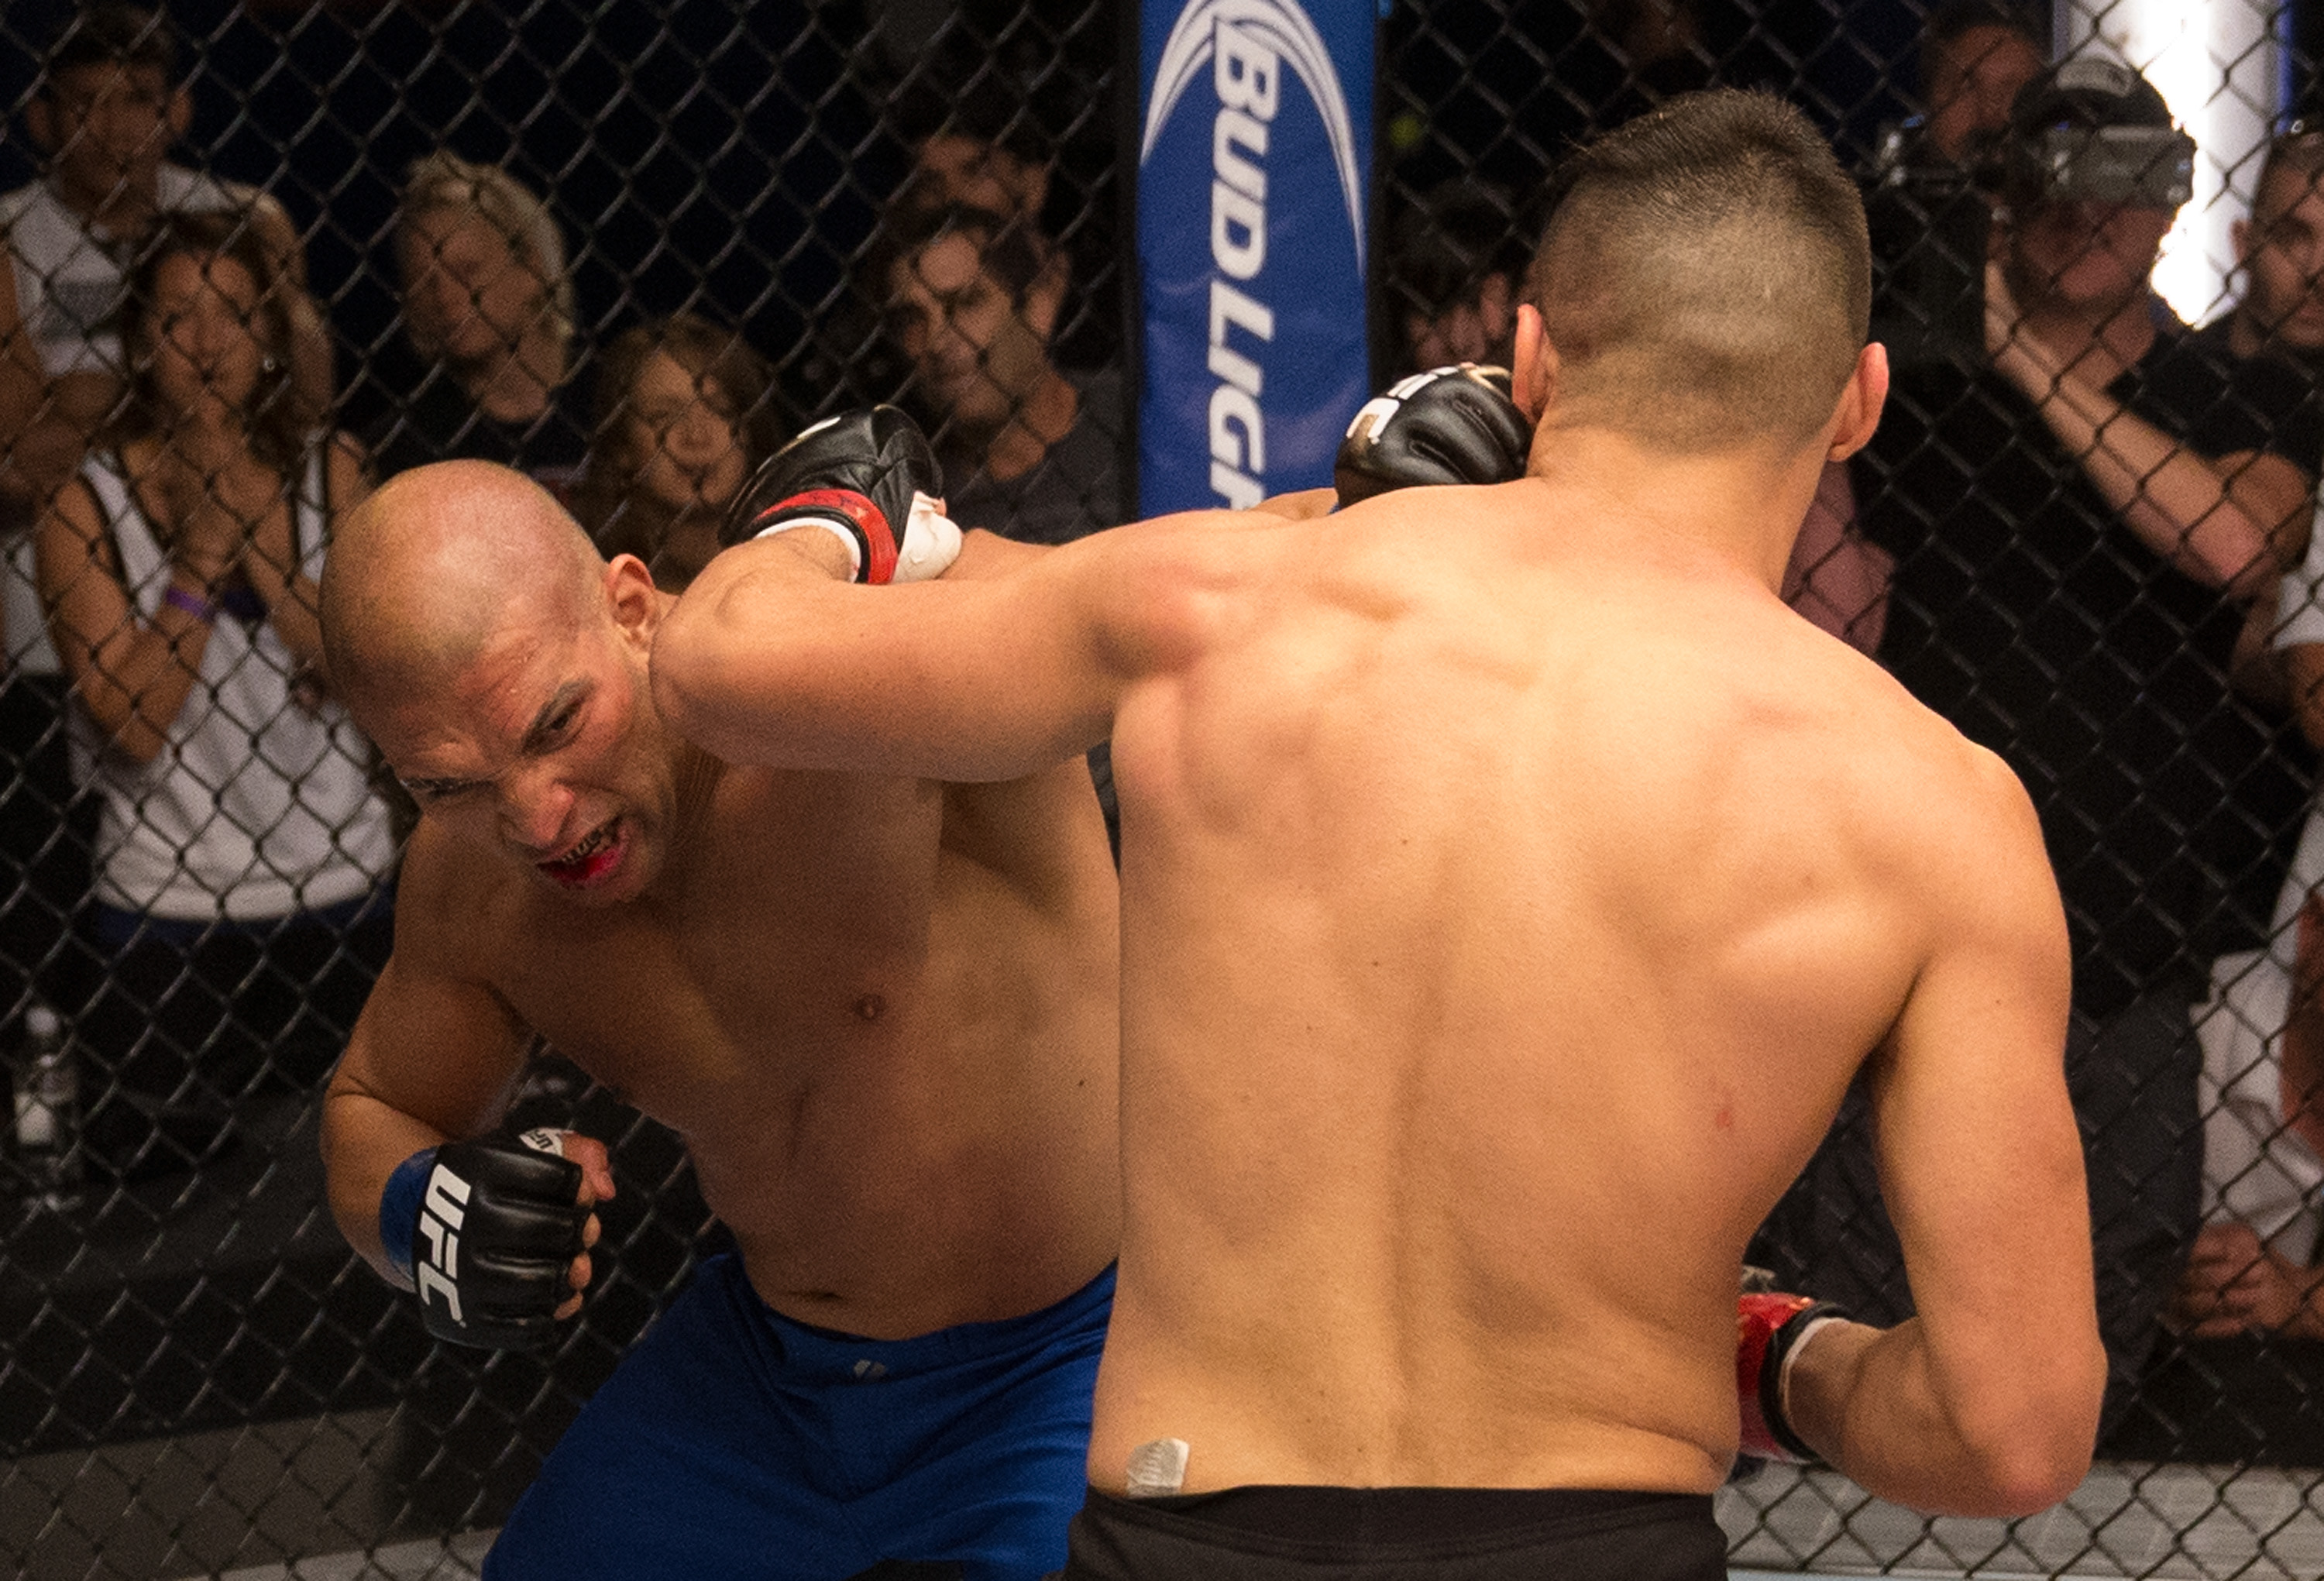 Hayder Hassan punches Vicente Luque during the filming of The Ultimate Fighter: American Top Team vs Blackzilians on February 27, 2015 in Coconut Creek, Florida. (Photo by Chris Trotman/Zuffa LLC)